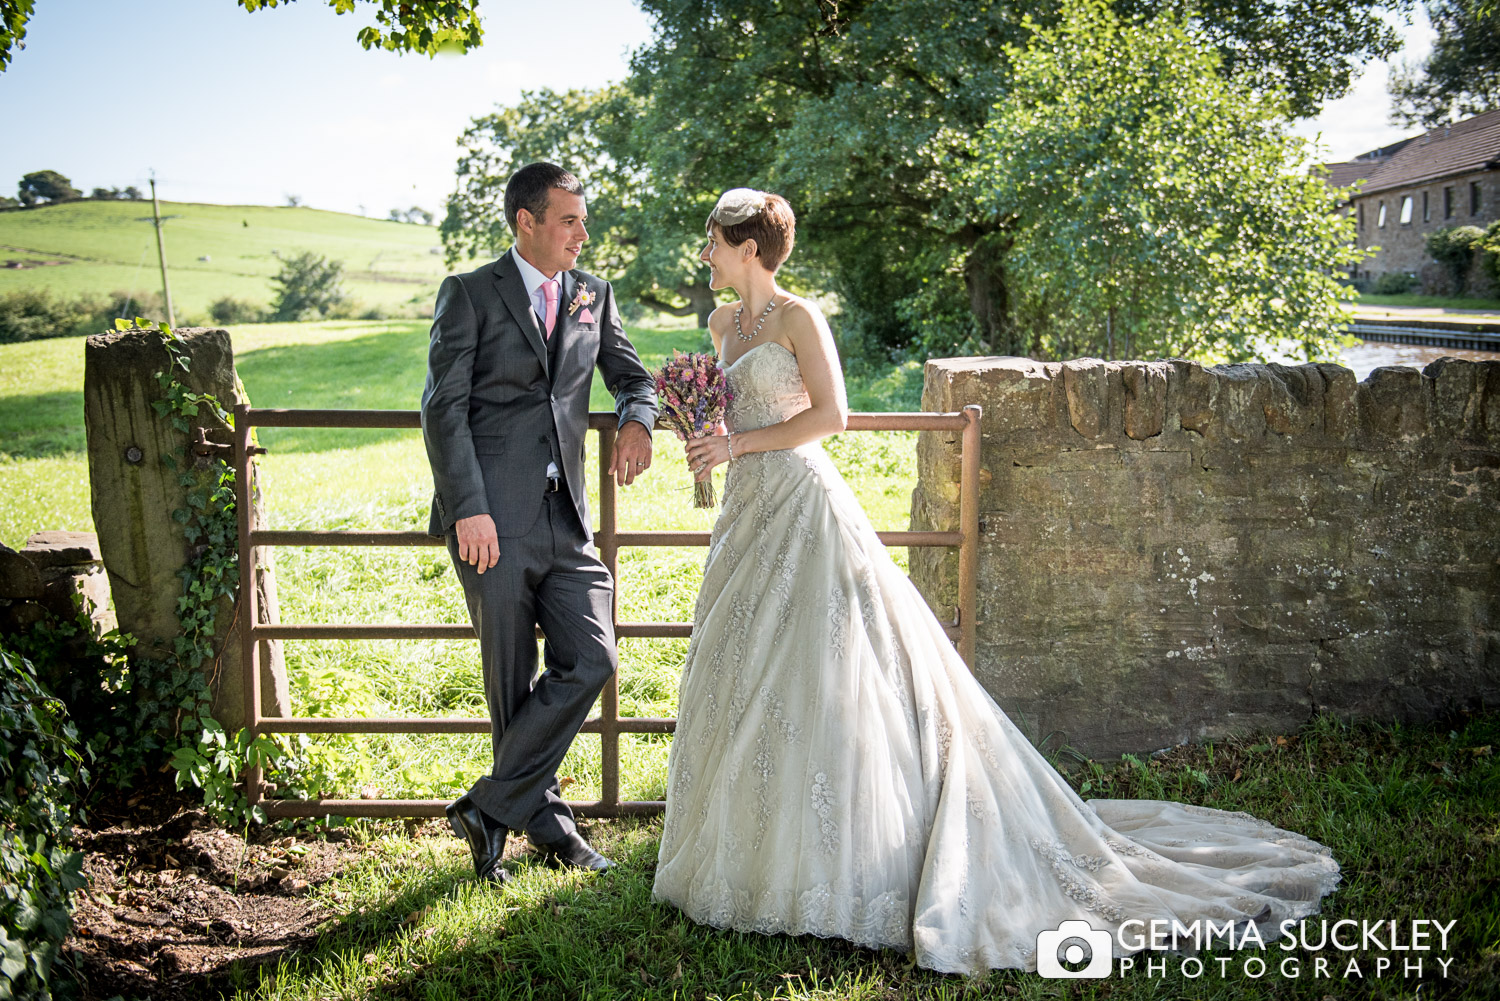 skipton-wedding-photographer-©gemmasuckleyphotography.JPG